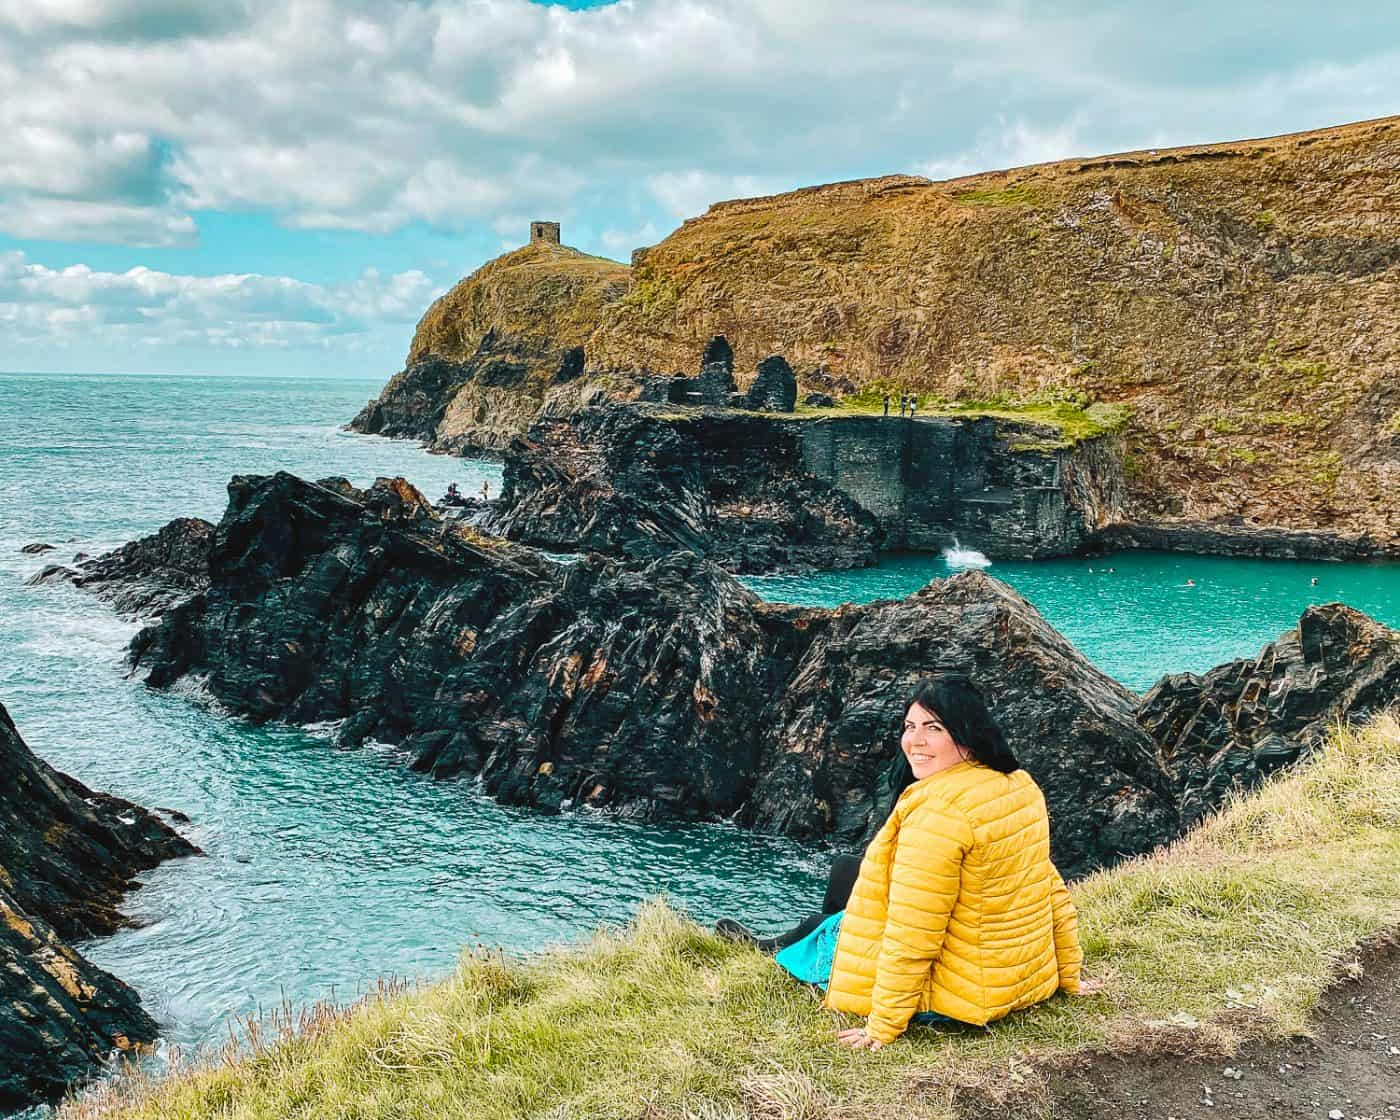 How to visit the Blue Lagoon in Pembrokeshire Wales